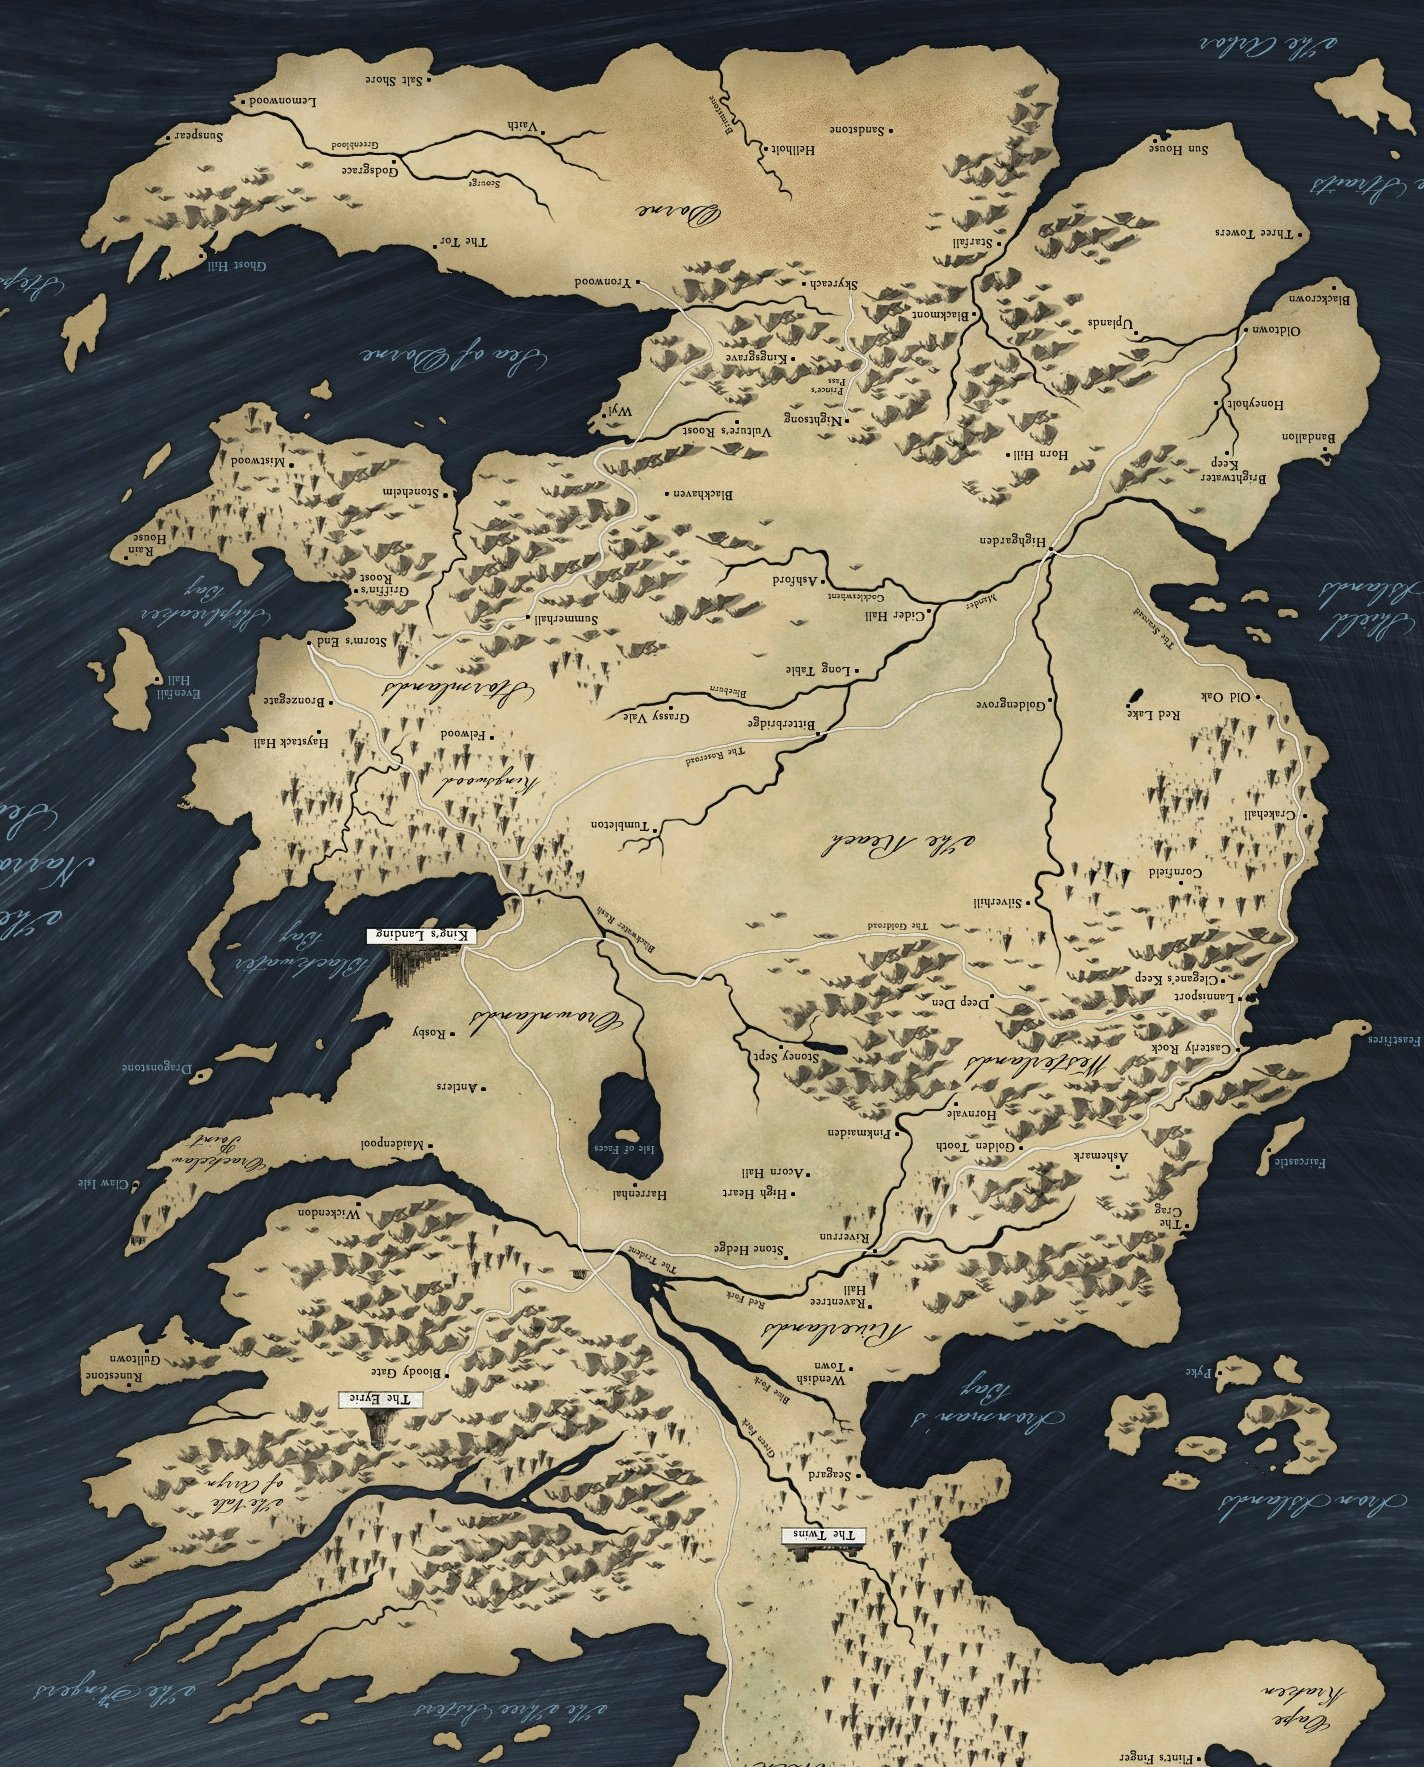 25+ Iphone Game Of Thrones Map Wallpaper Gif